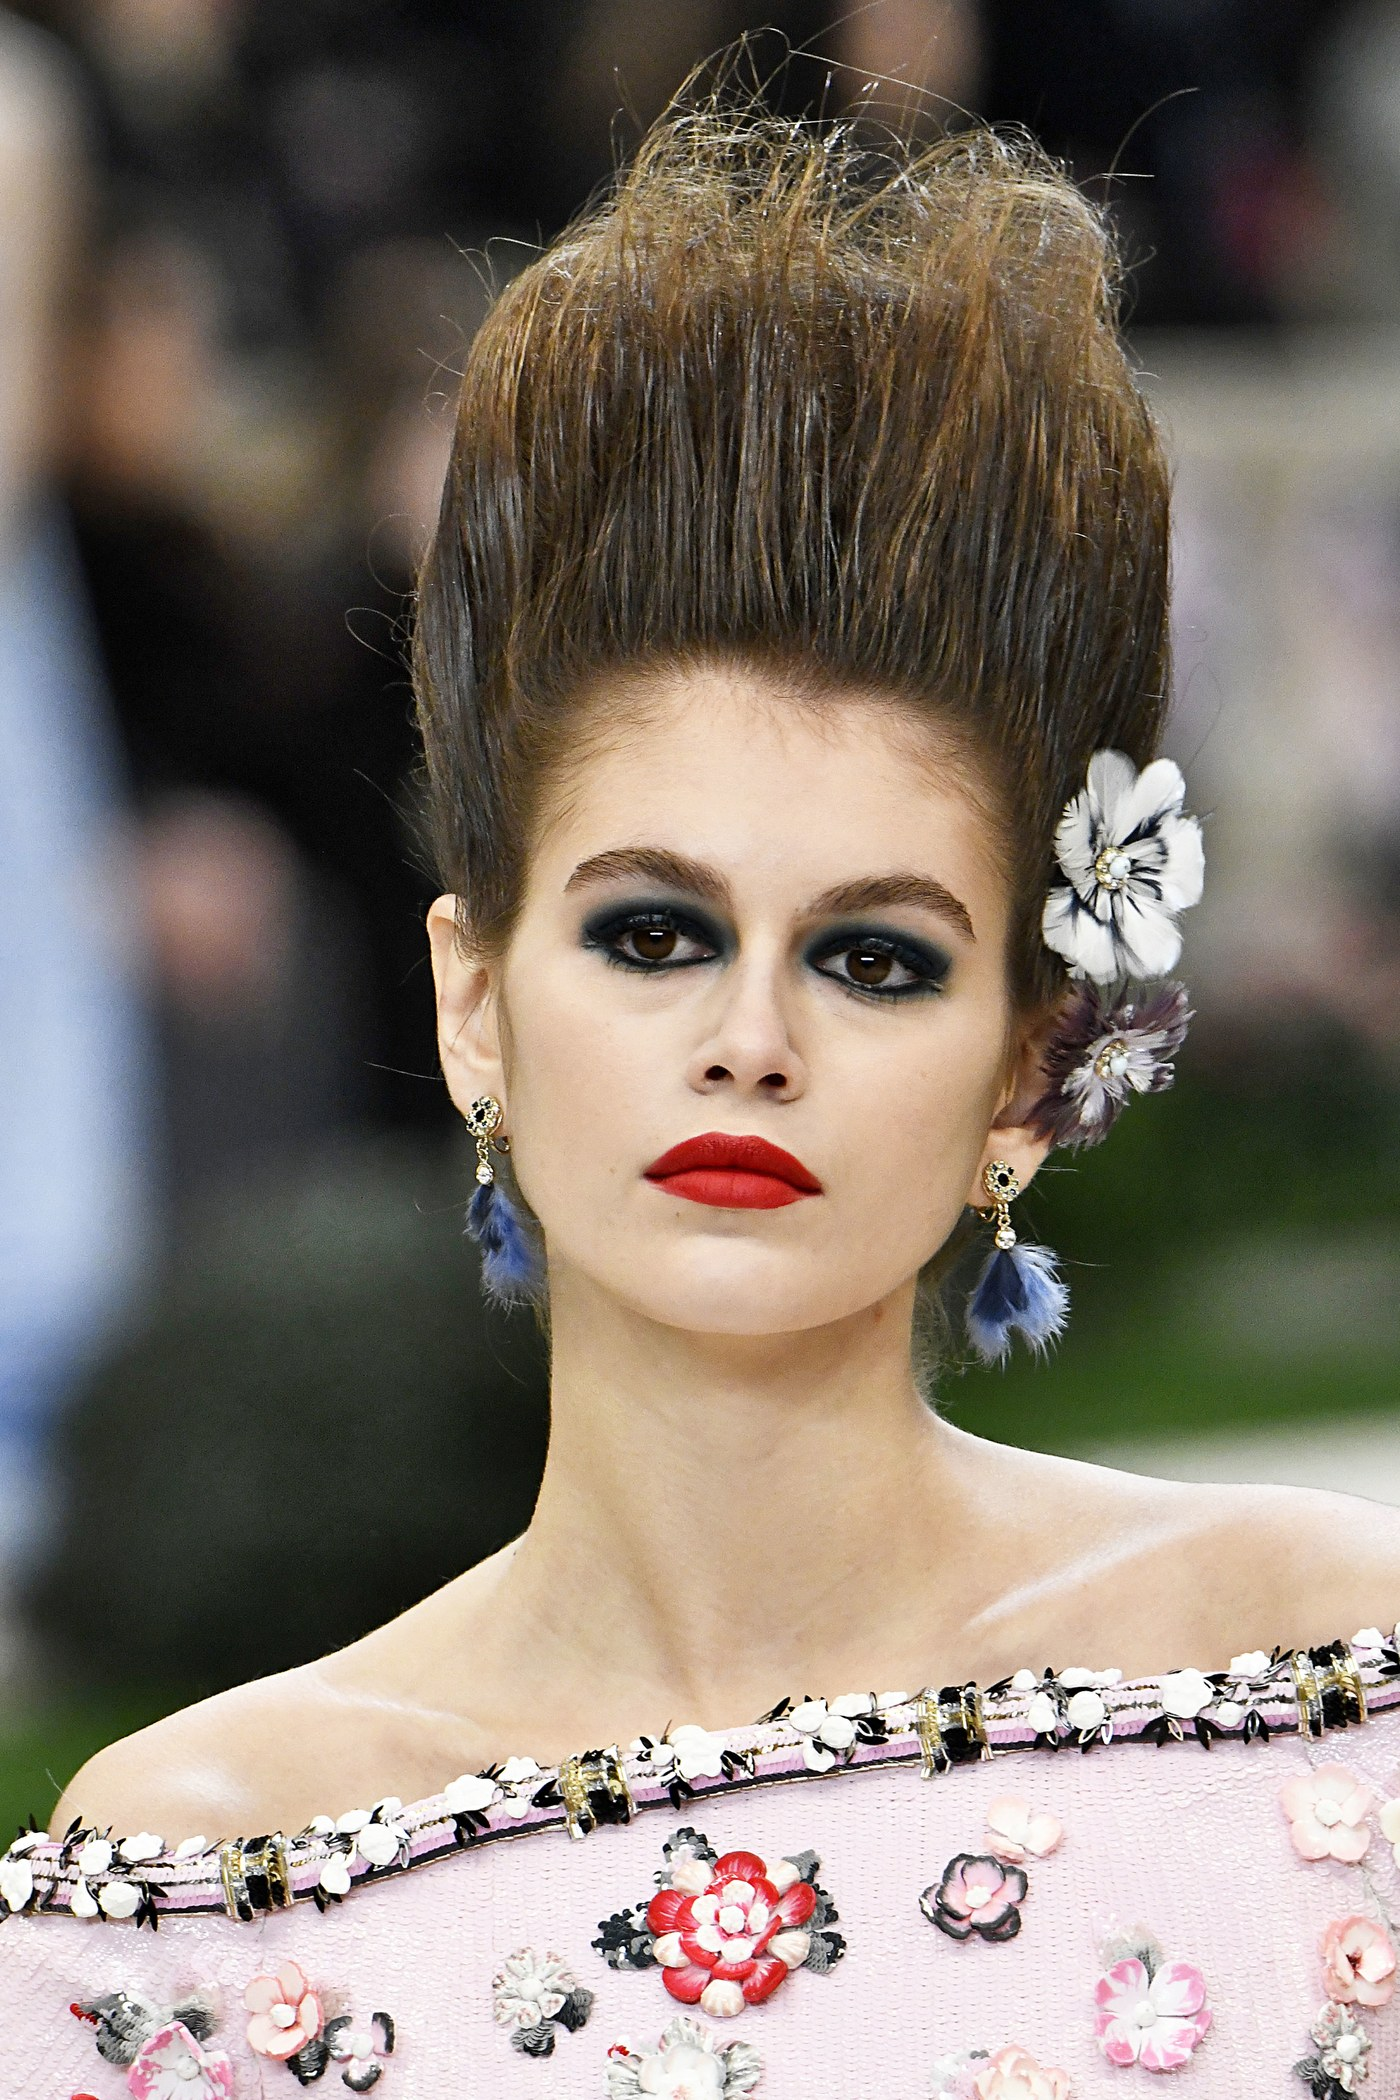 Kaia Gerber per Chanel- make up haute couture 2019